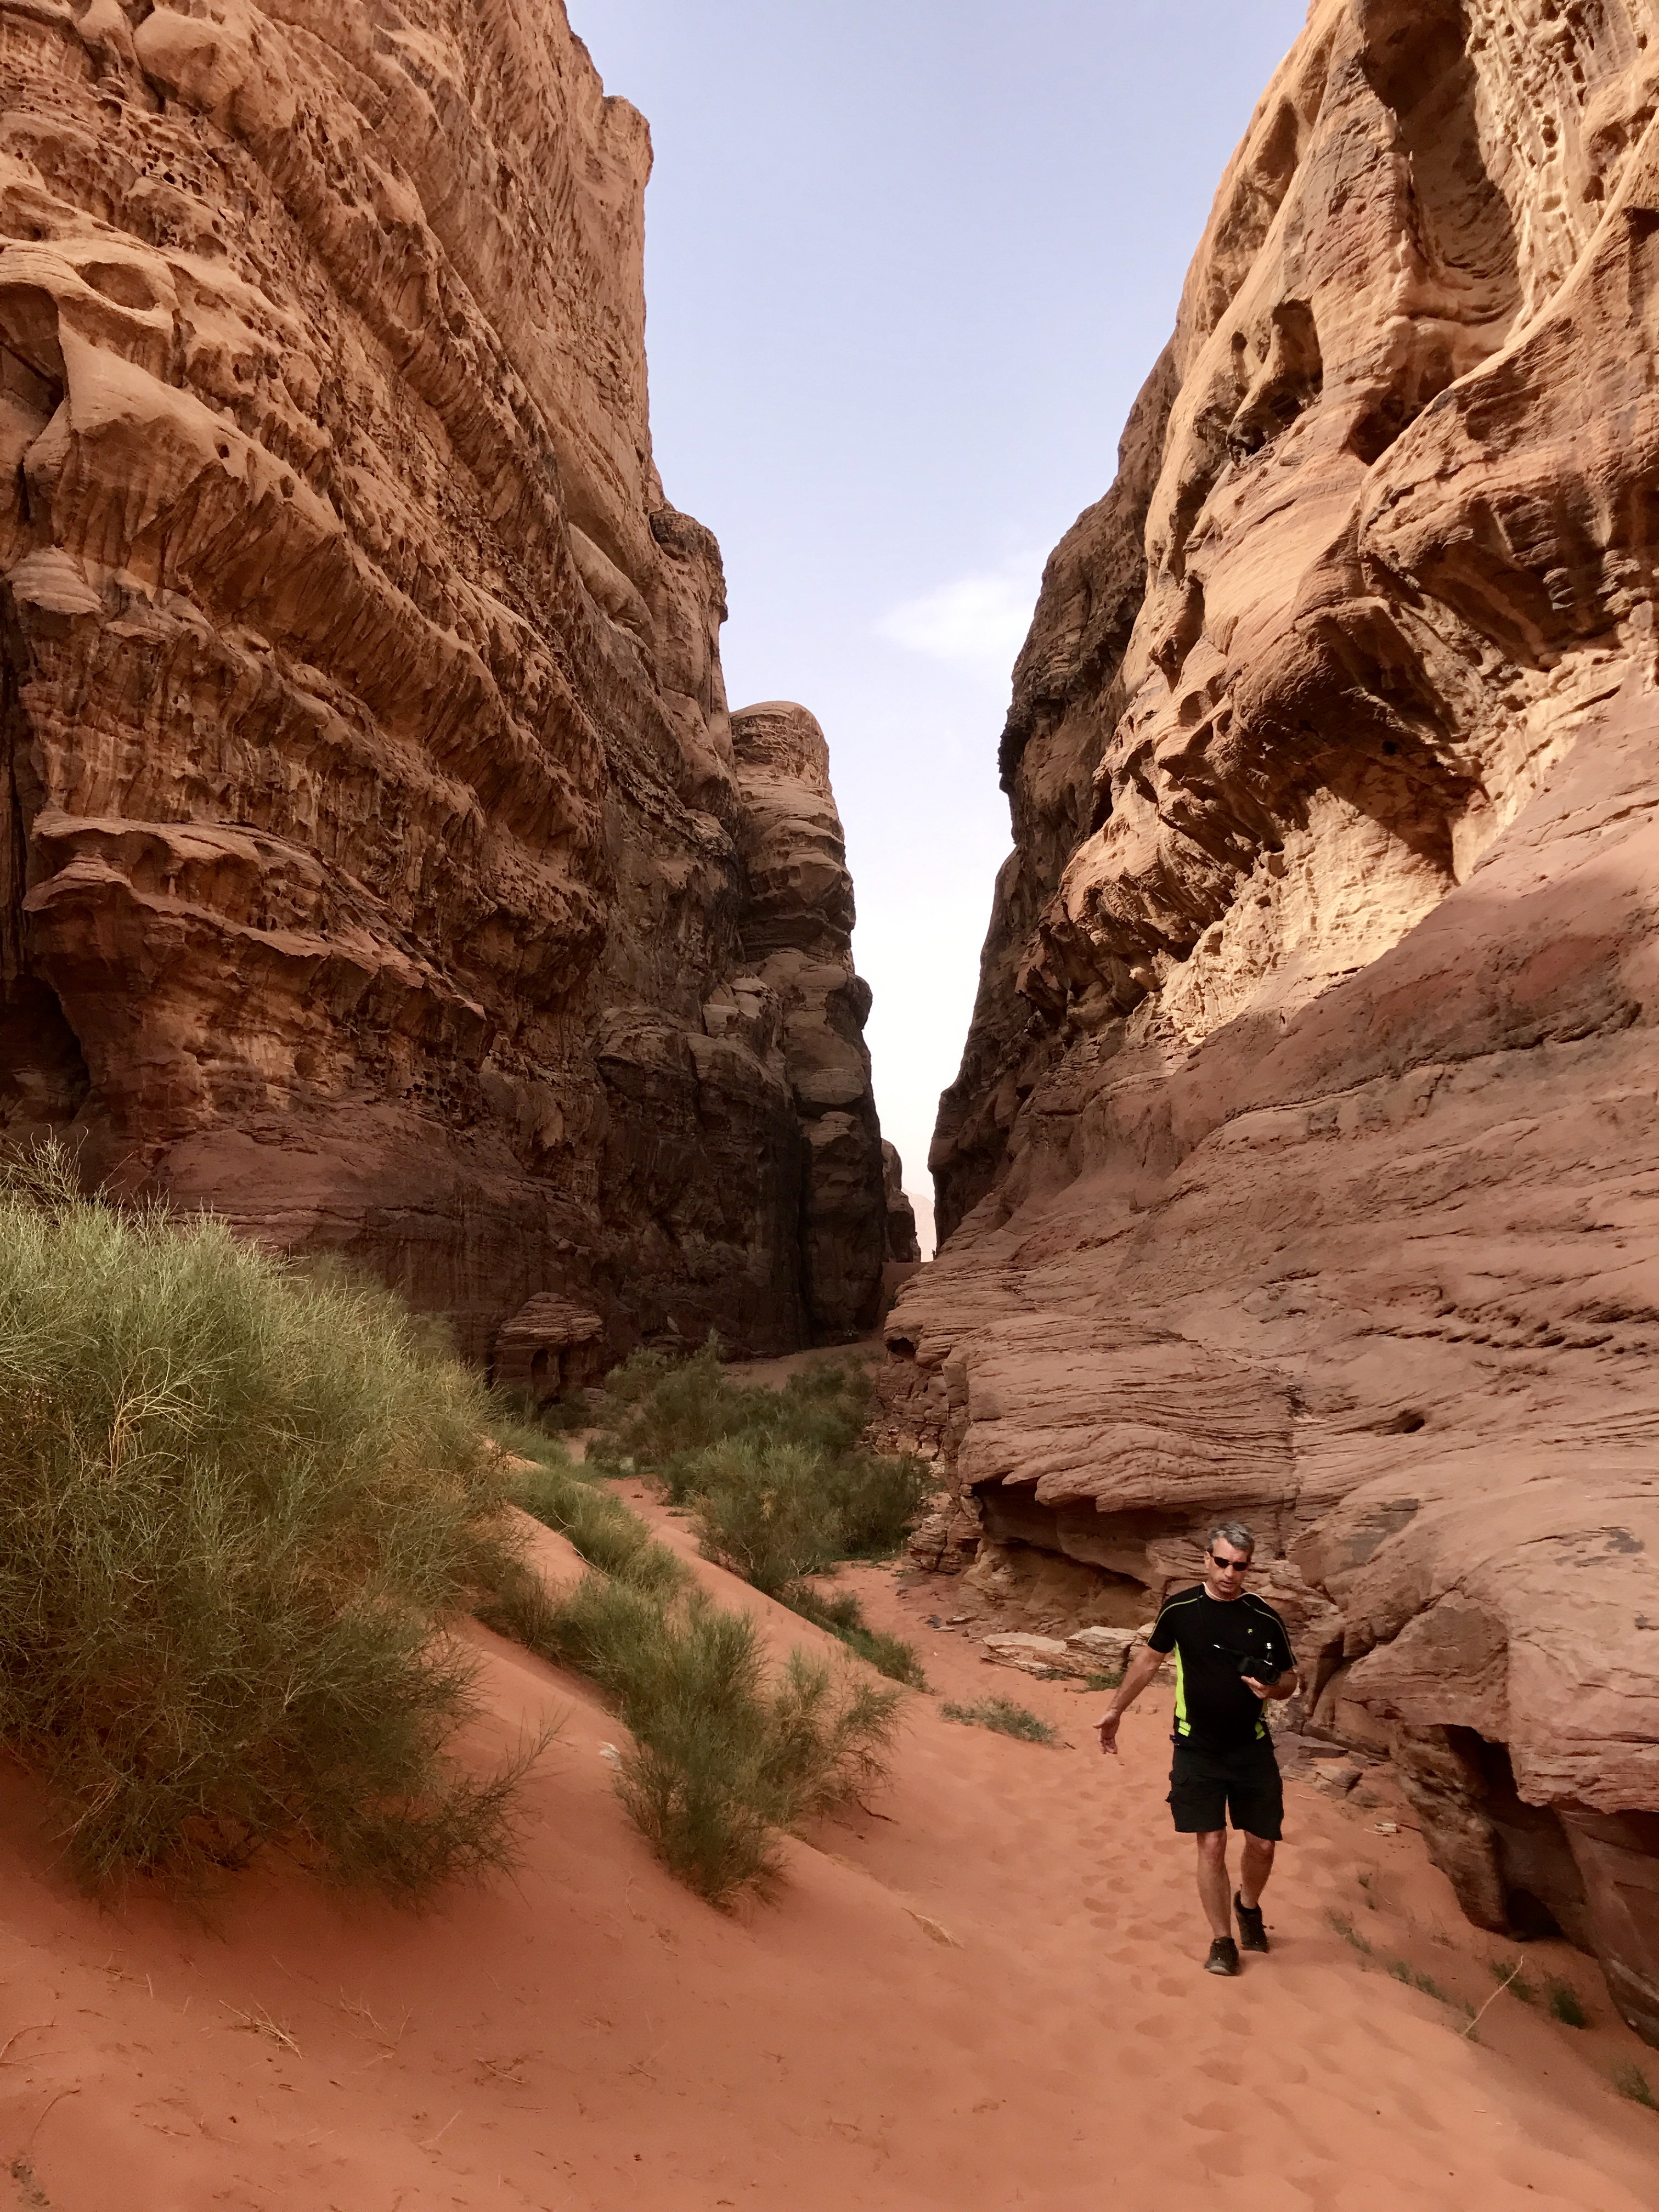 The canyons of Wadi Rum | the land of Jordan in the bible and photos from our trip through Jordan and Israel, touring the holy land